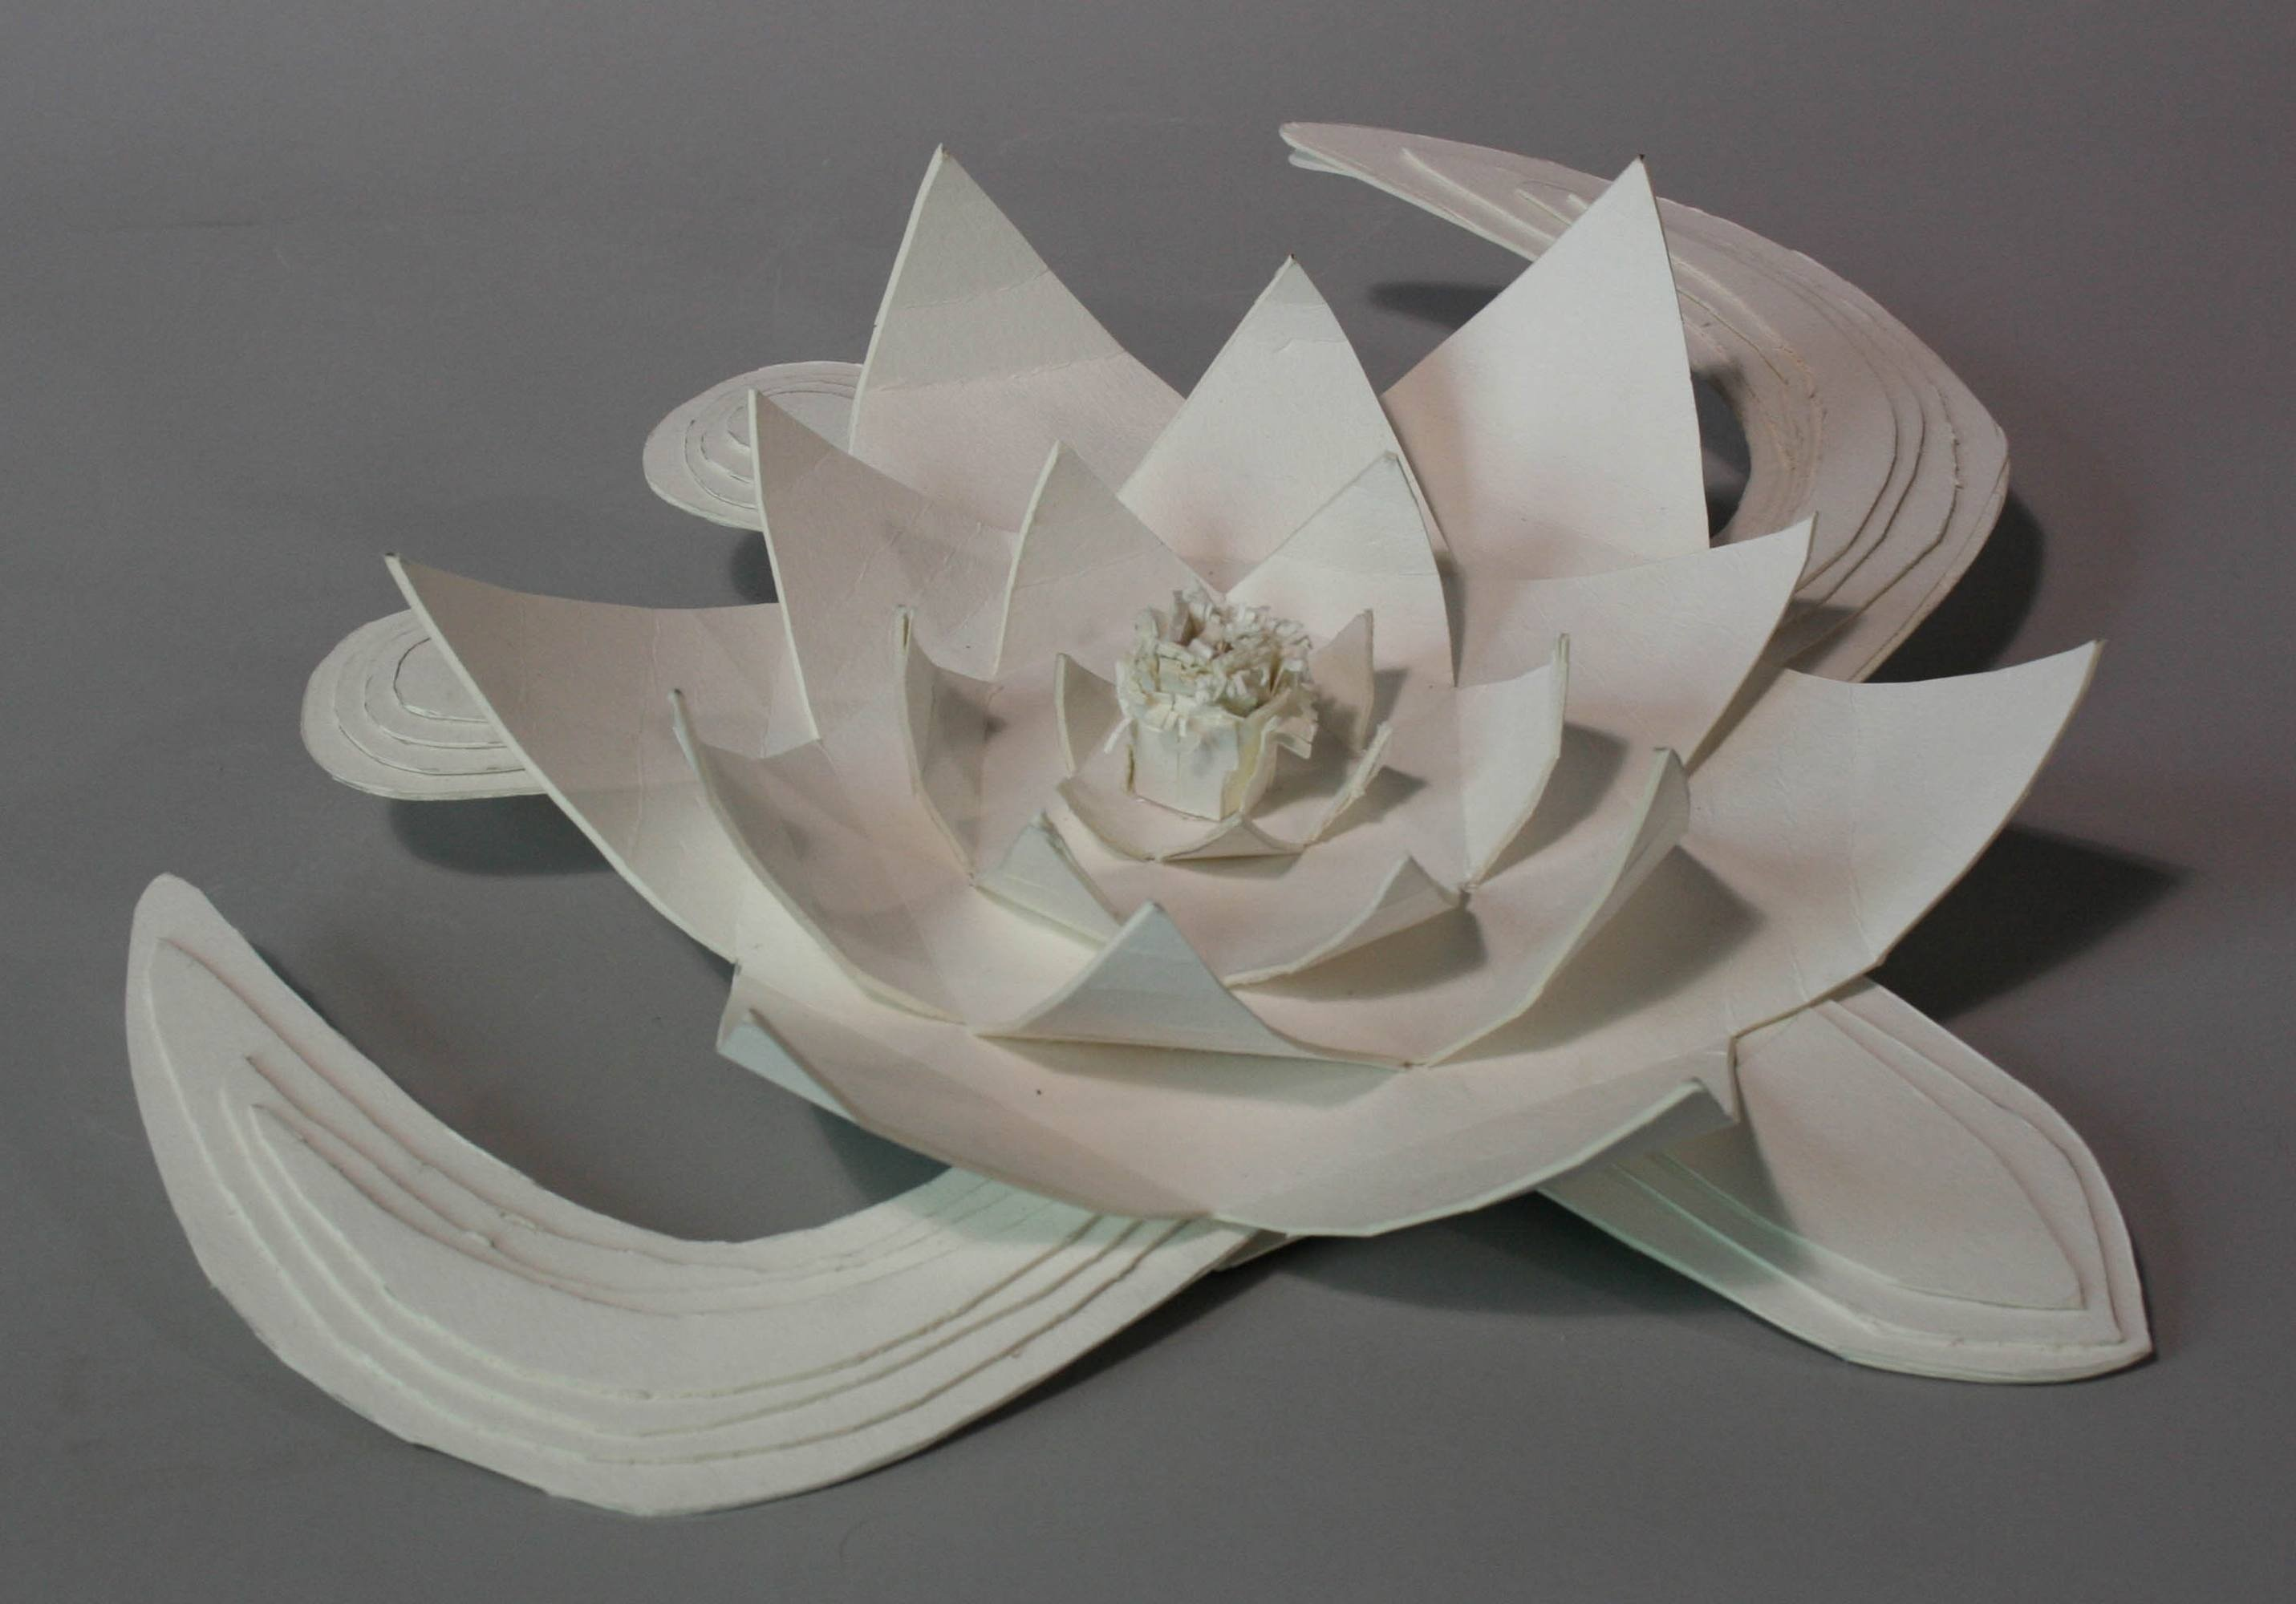 Lotus flower art therapy class cardboard project